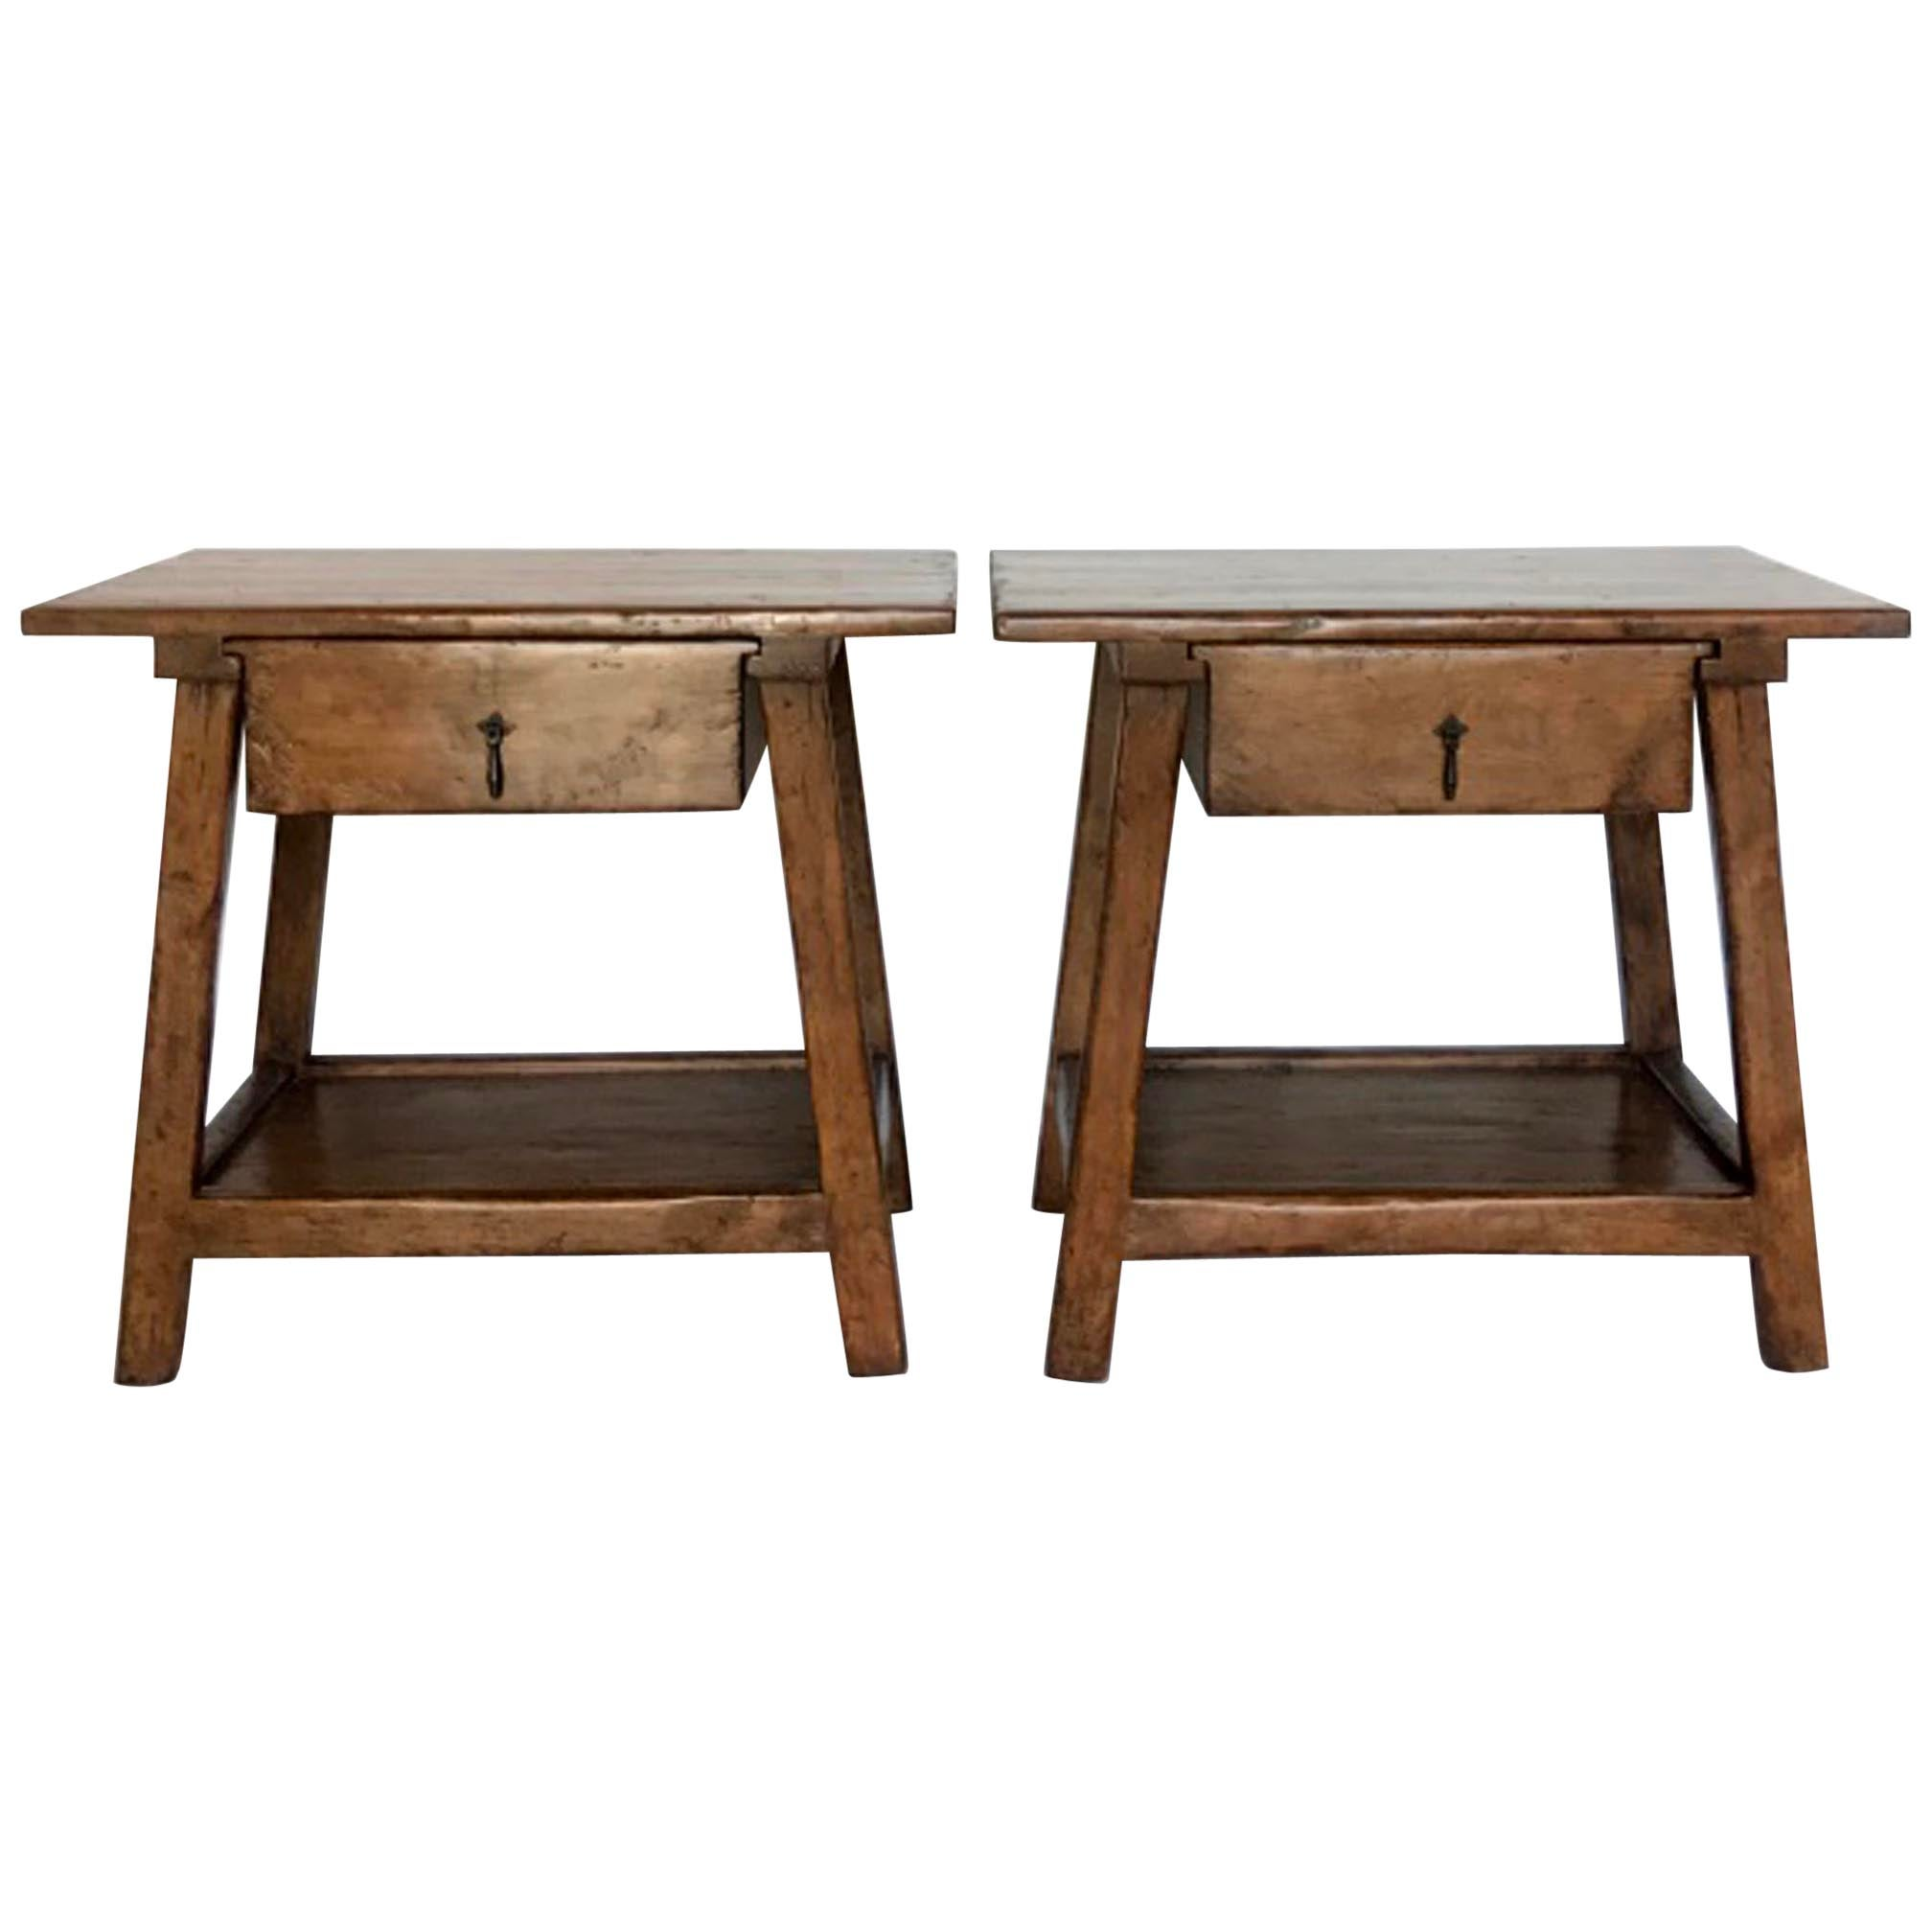 Custom Nightstands or Side Tables with Drawer